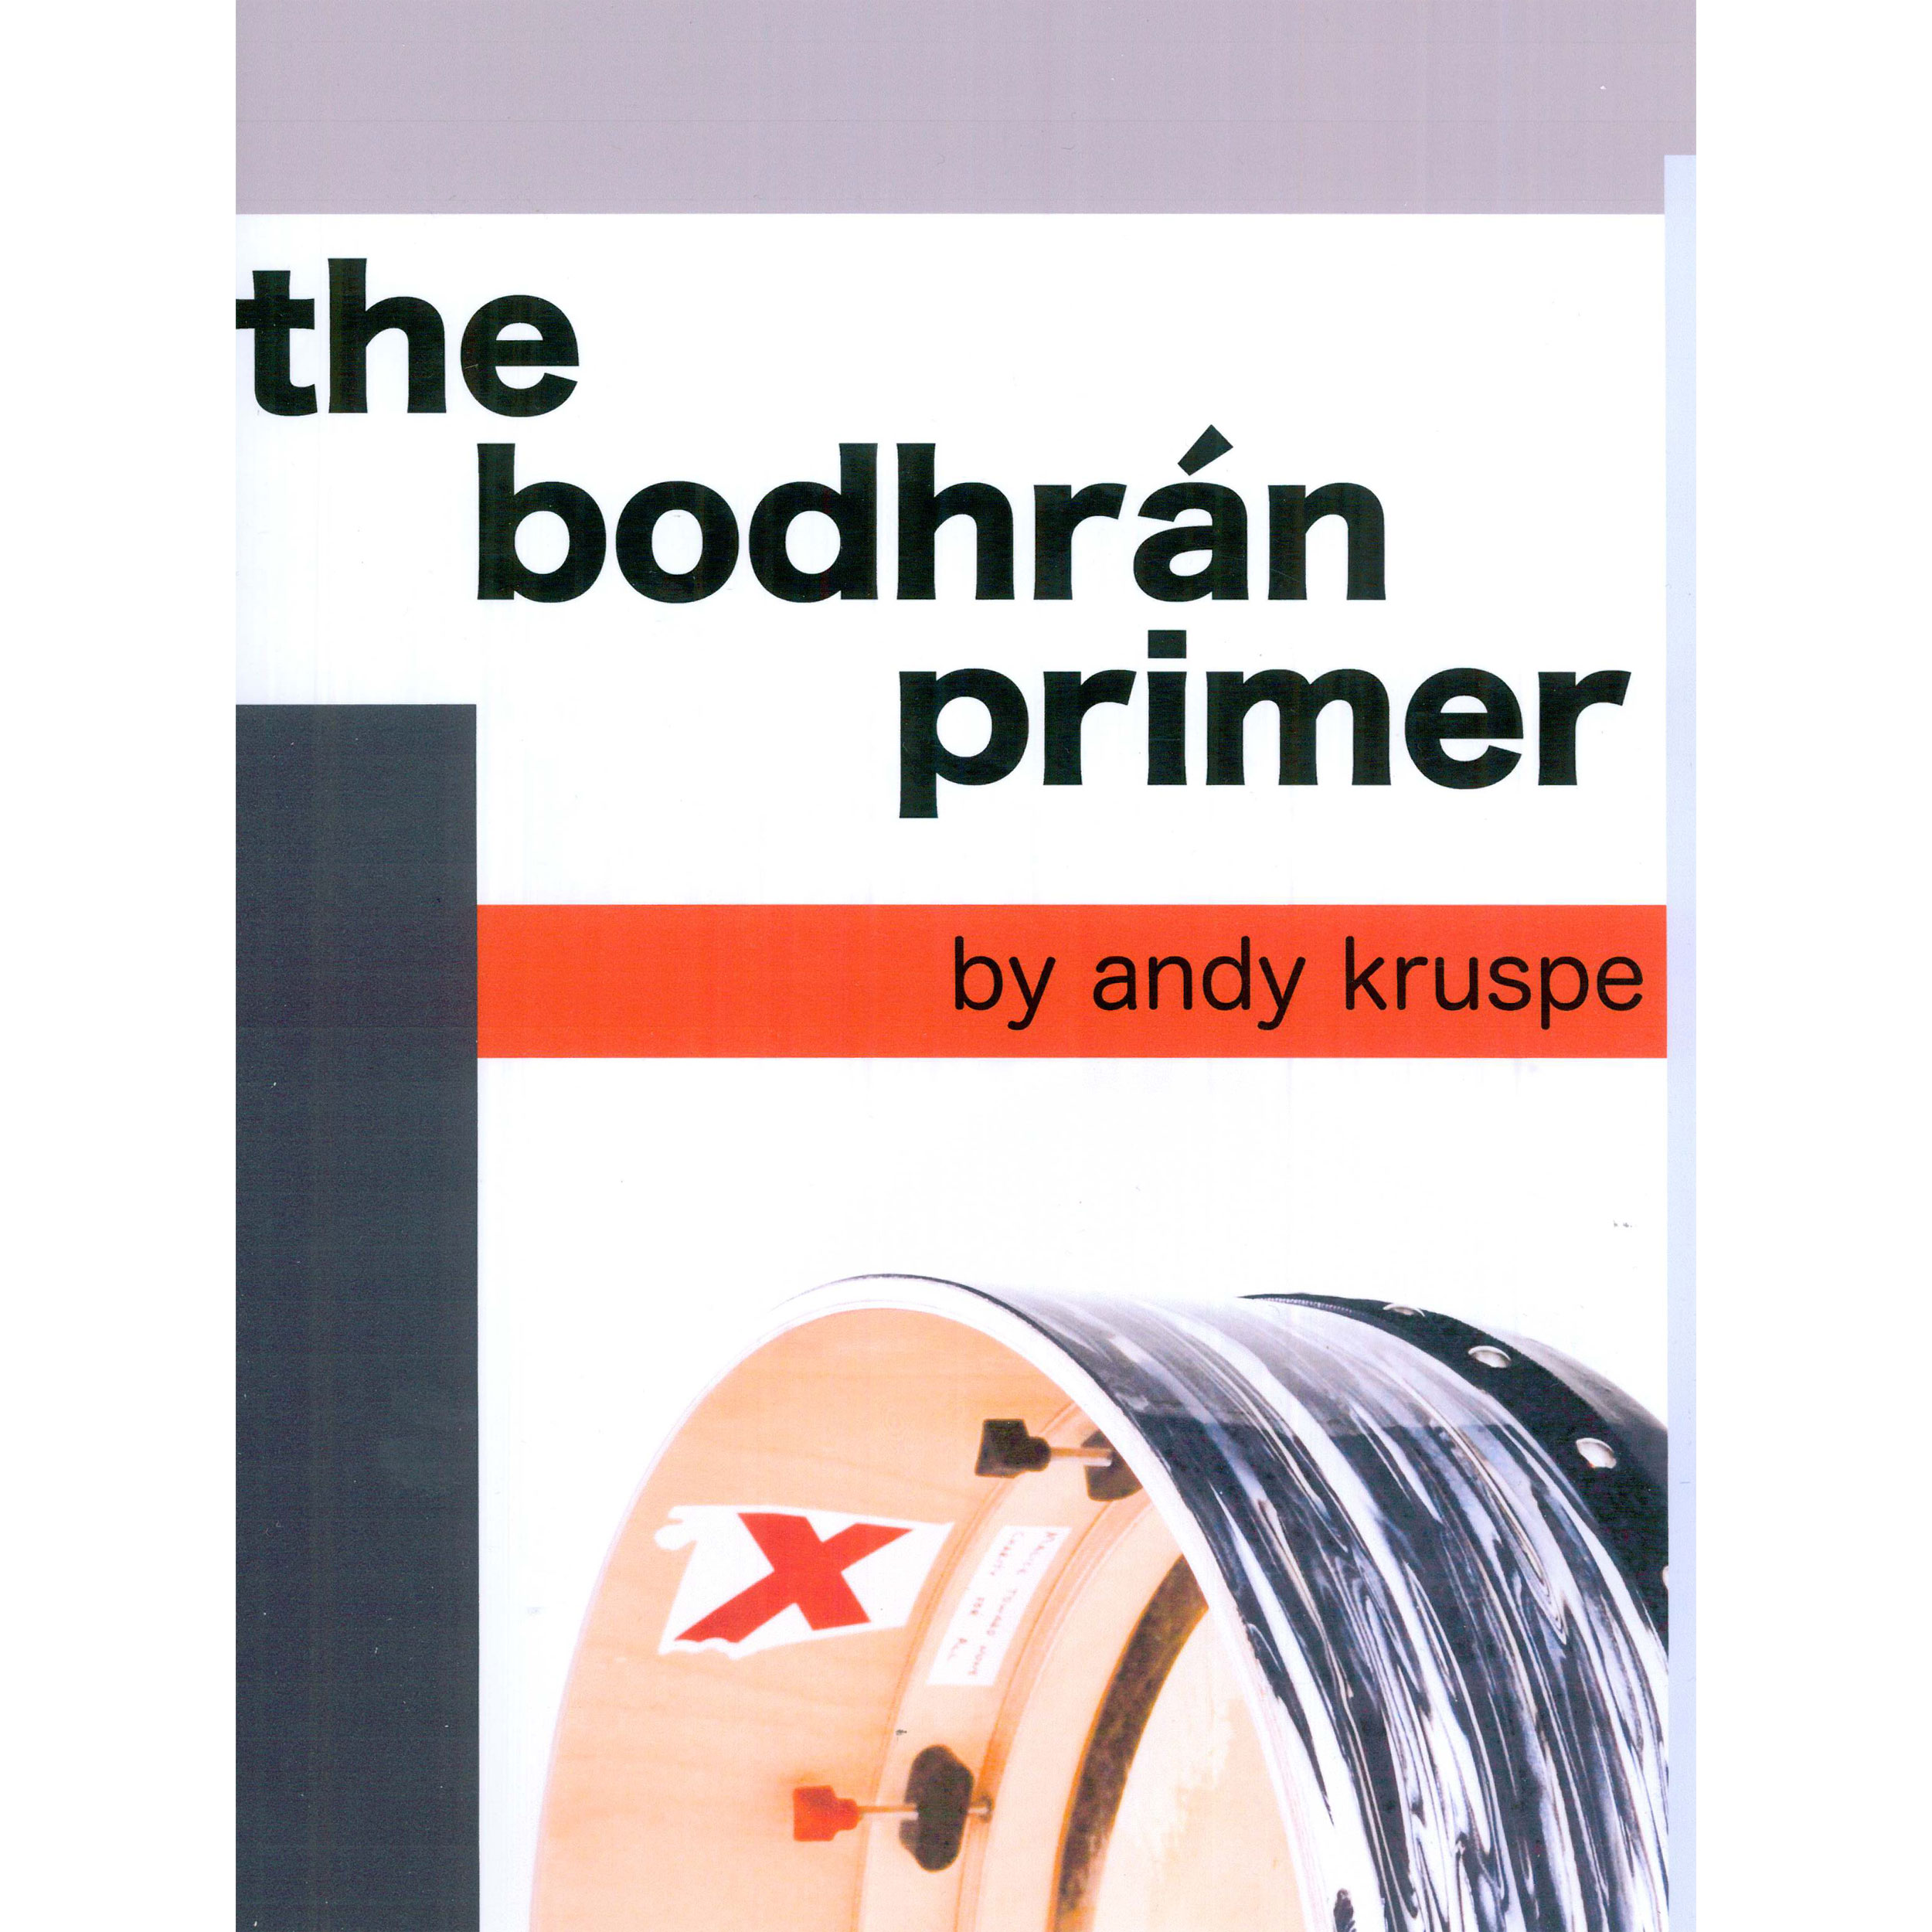 The Bodhran Primer by Andrew Kruspe